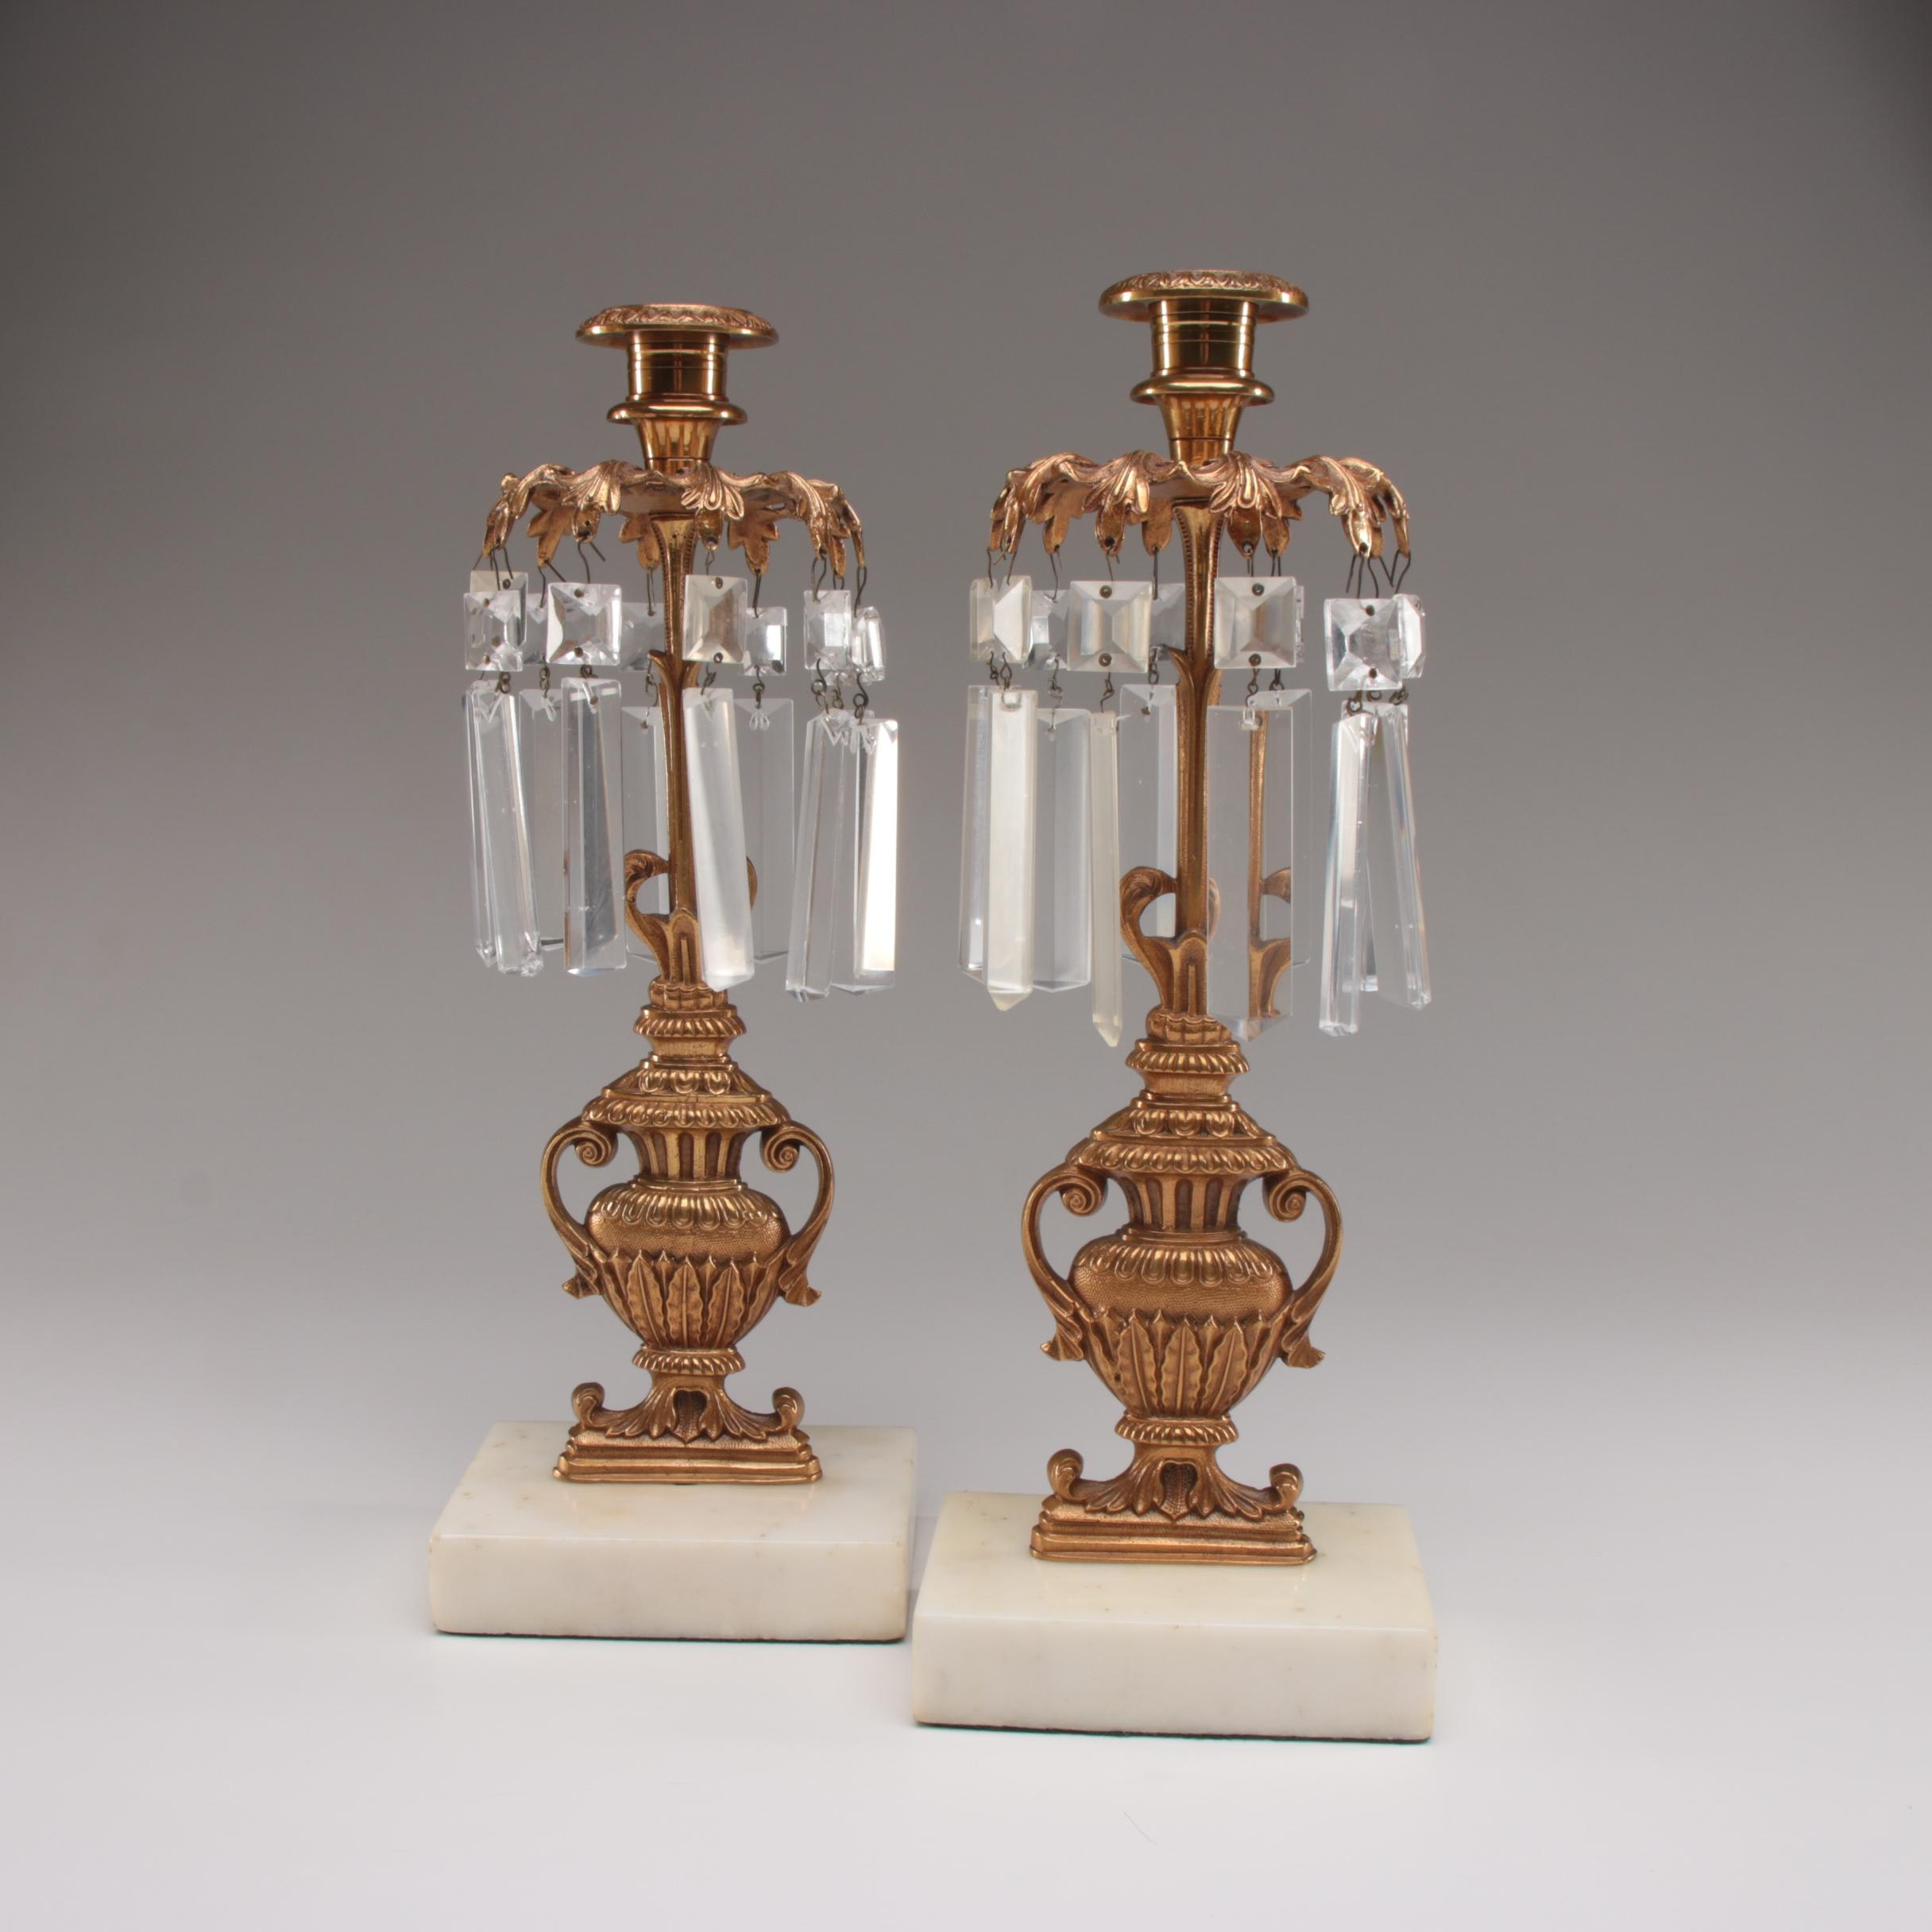 Pair of Neoclassical Gilt Metal and Marble Candlesticks with Cut Glass Lusters